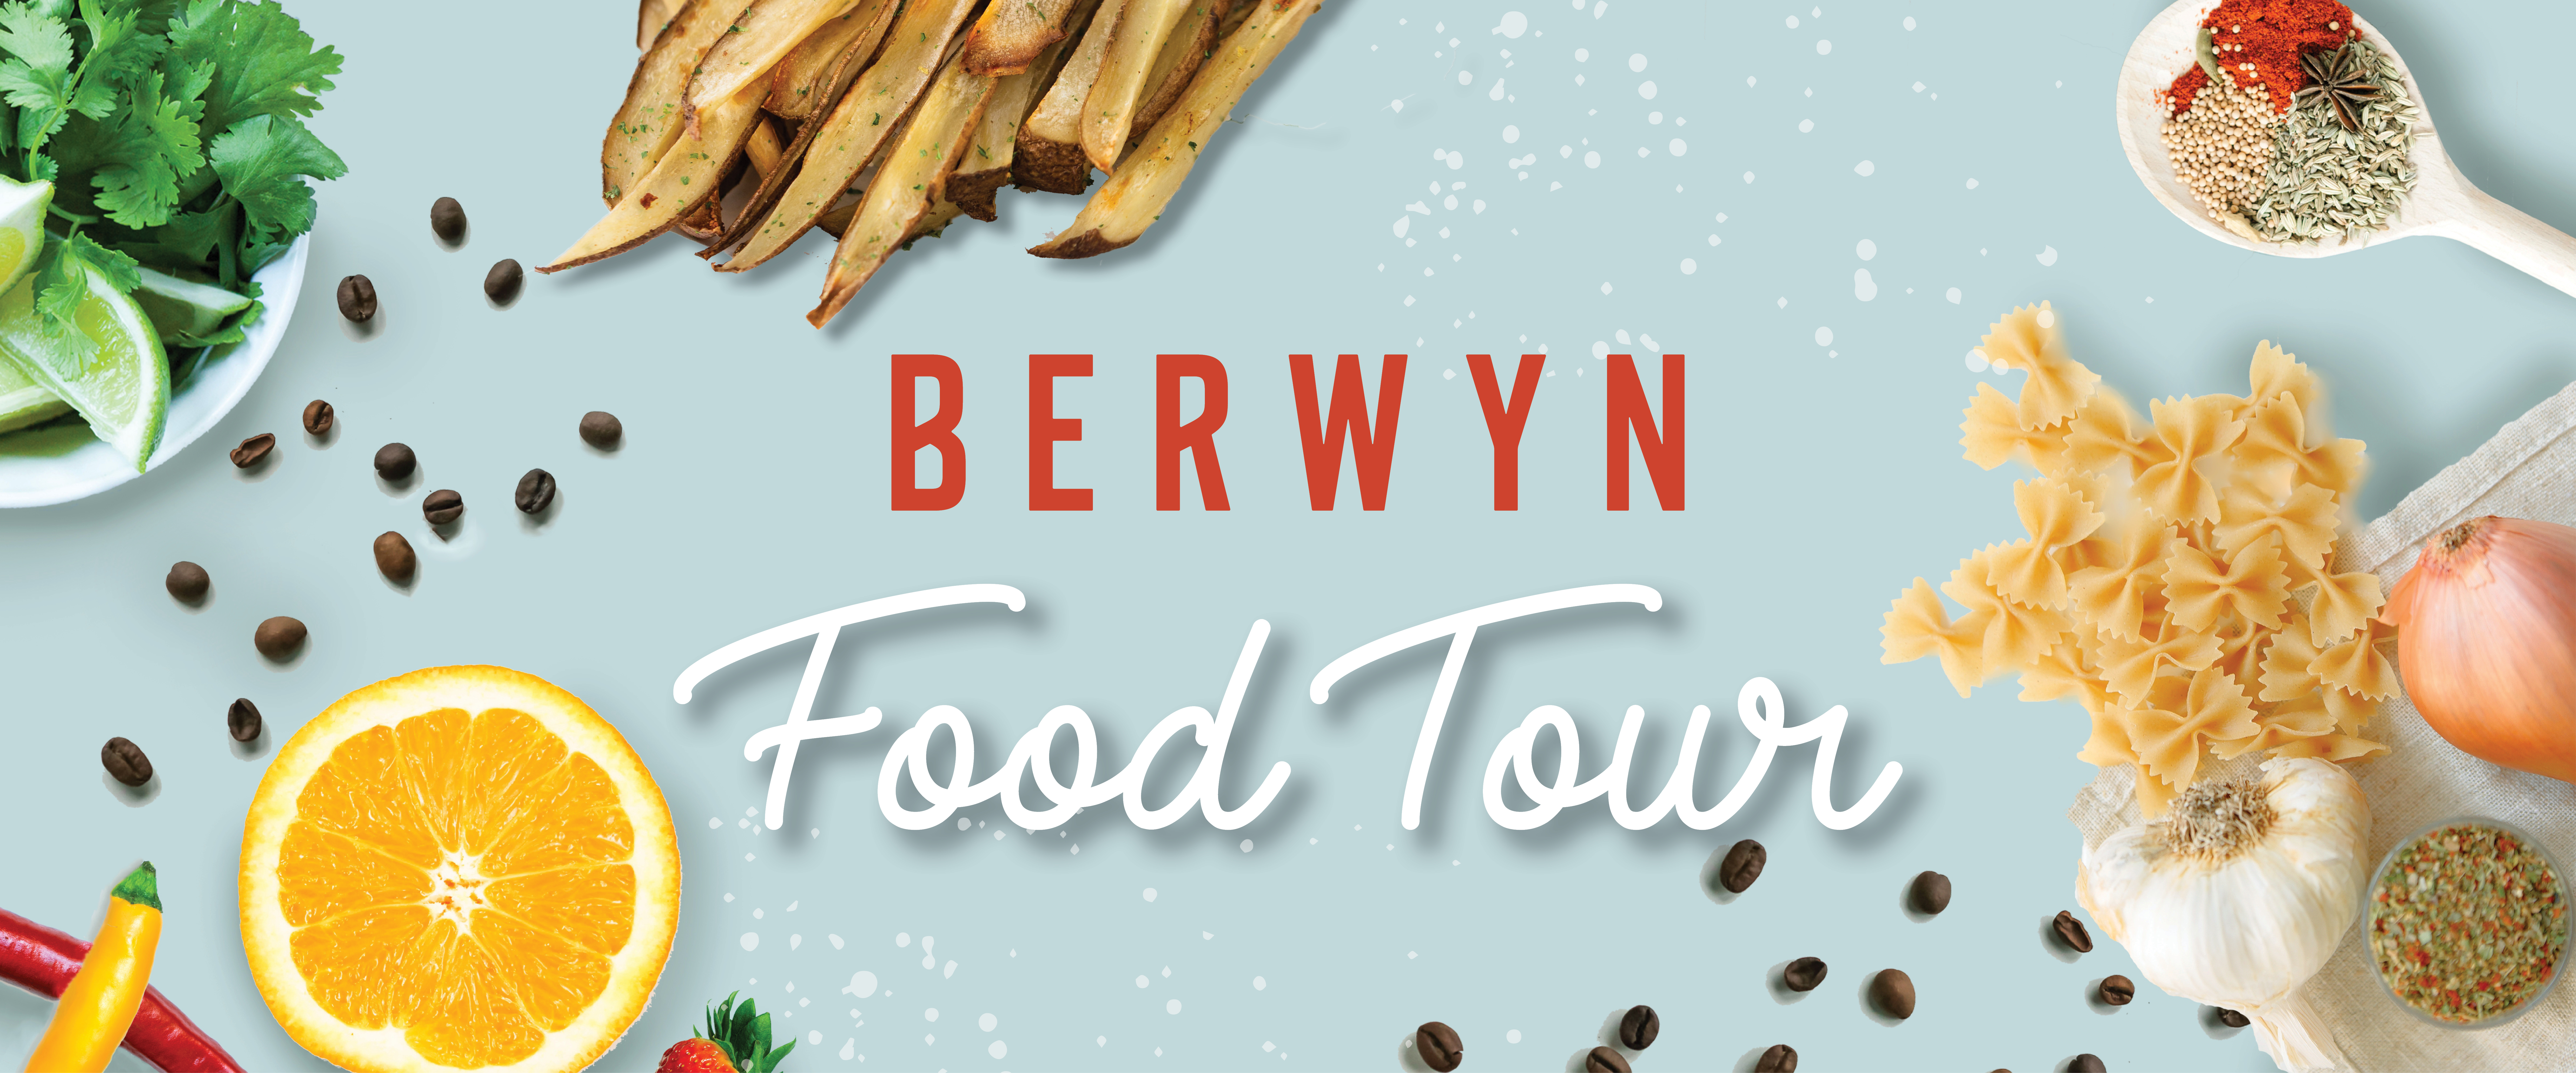 Berwyn Food Tour